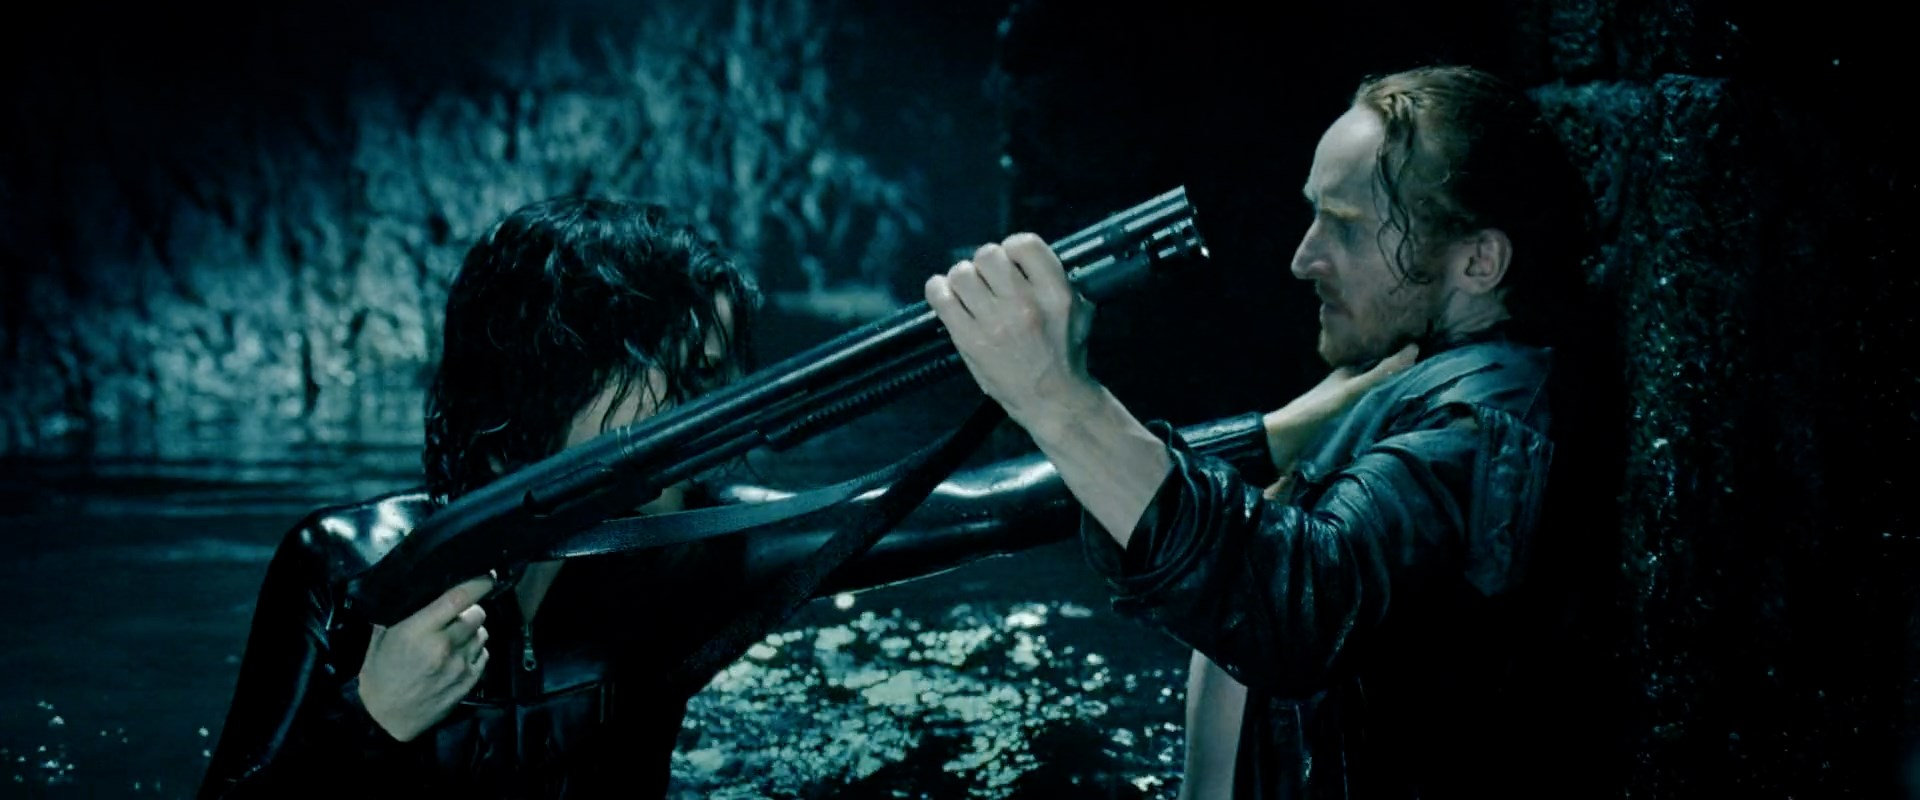 Archivo:Marcus tries to wrestle the gun away from Selene.jpg